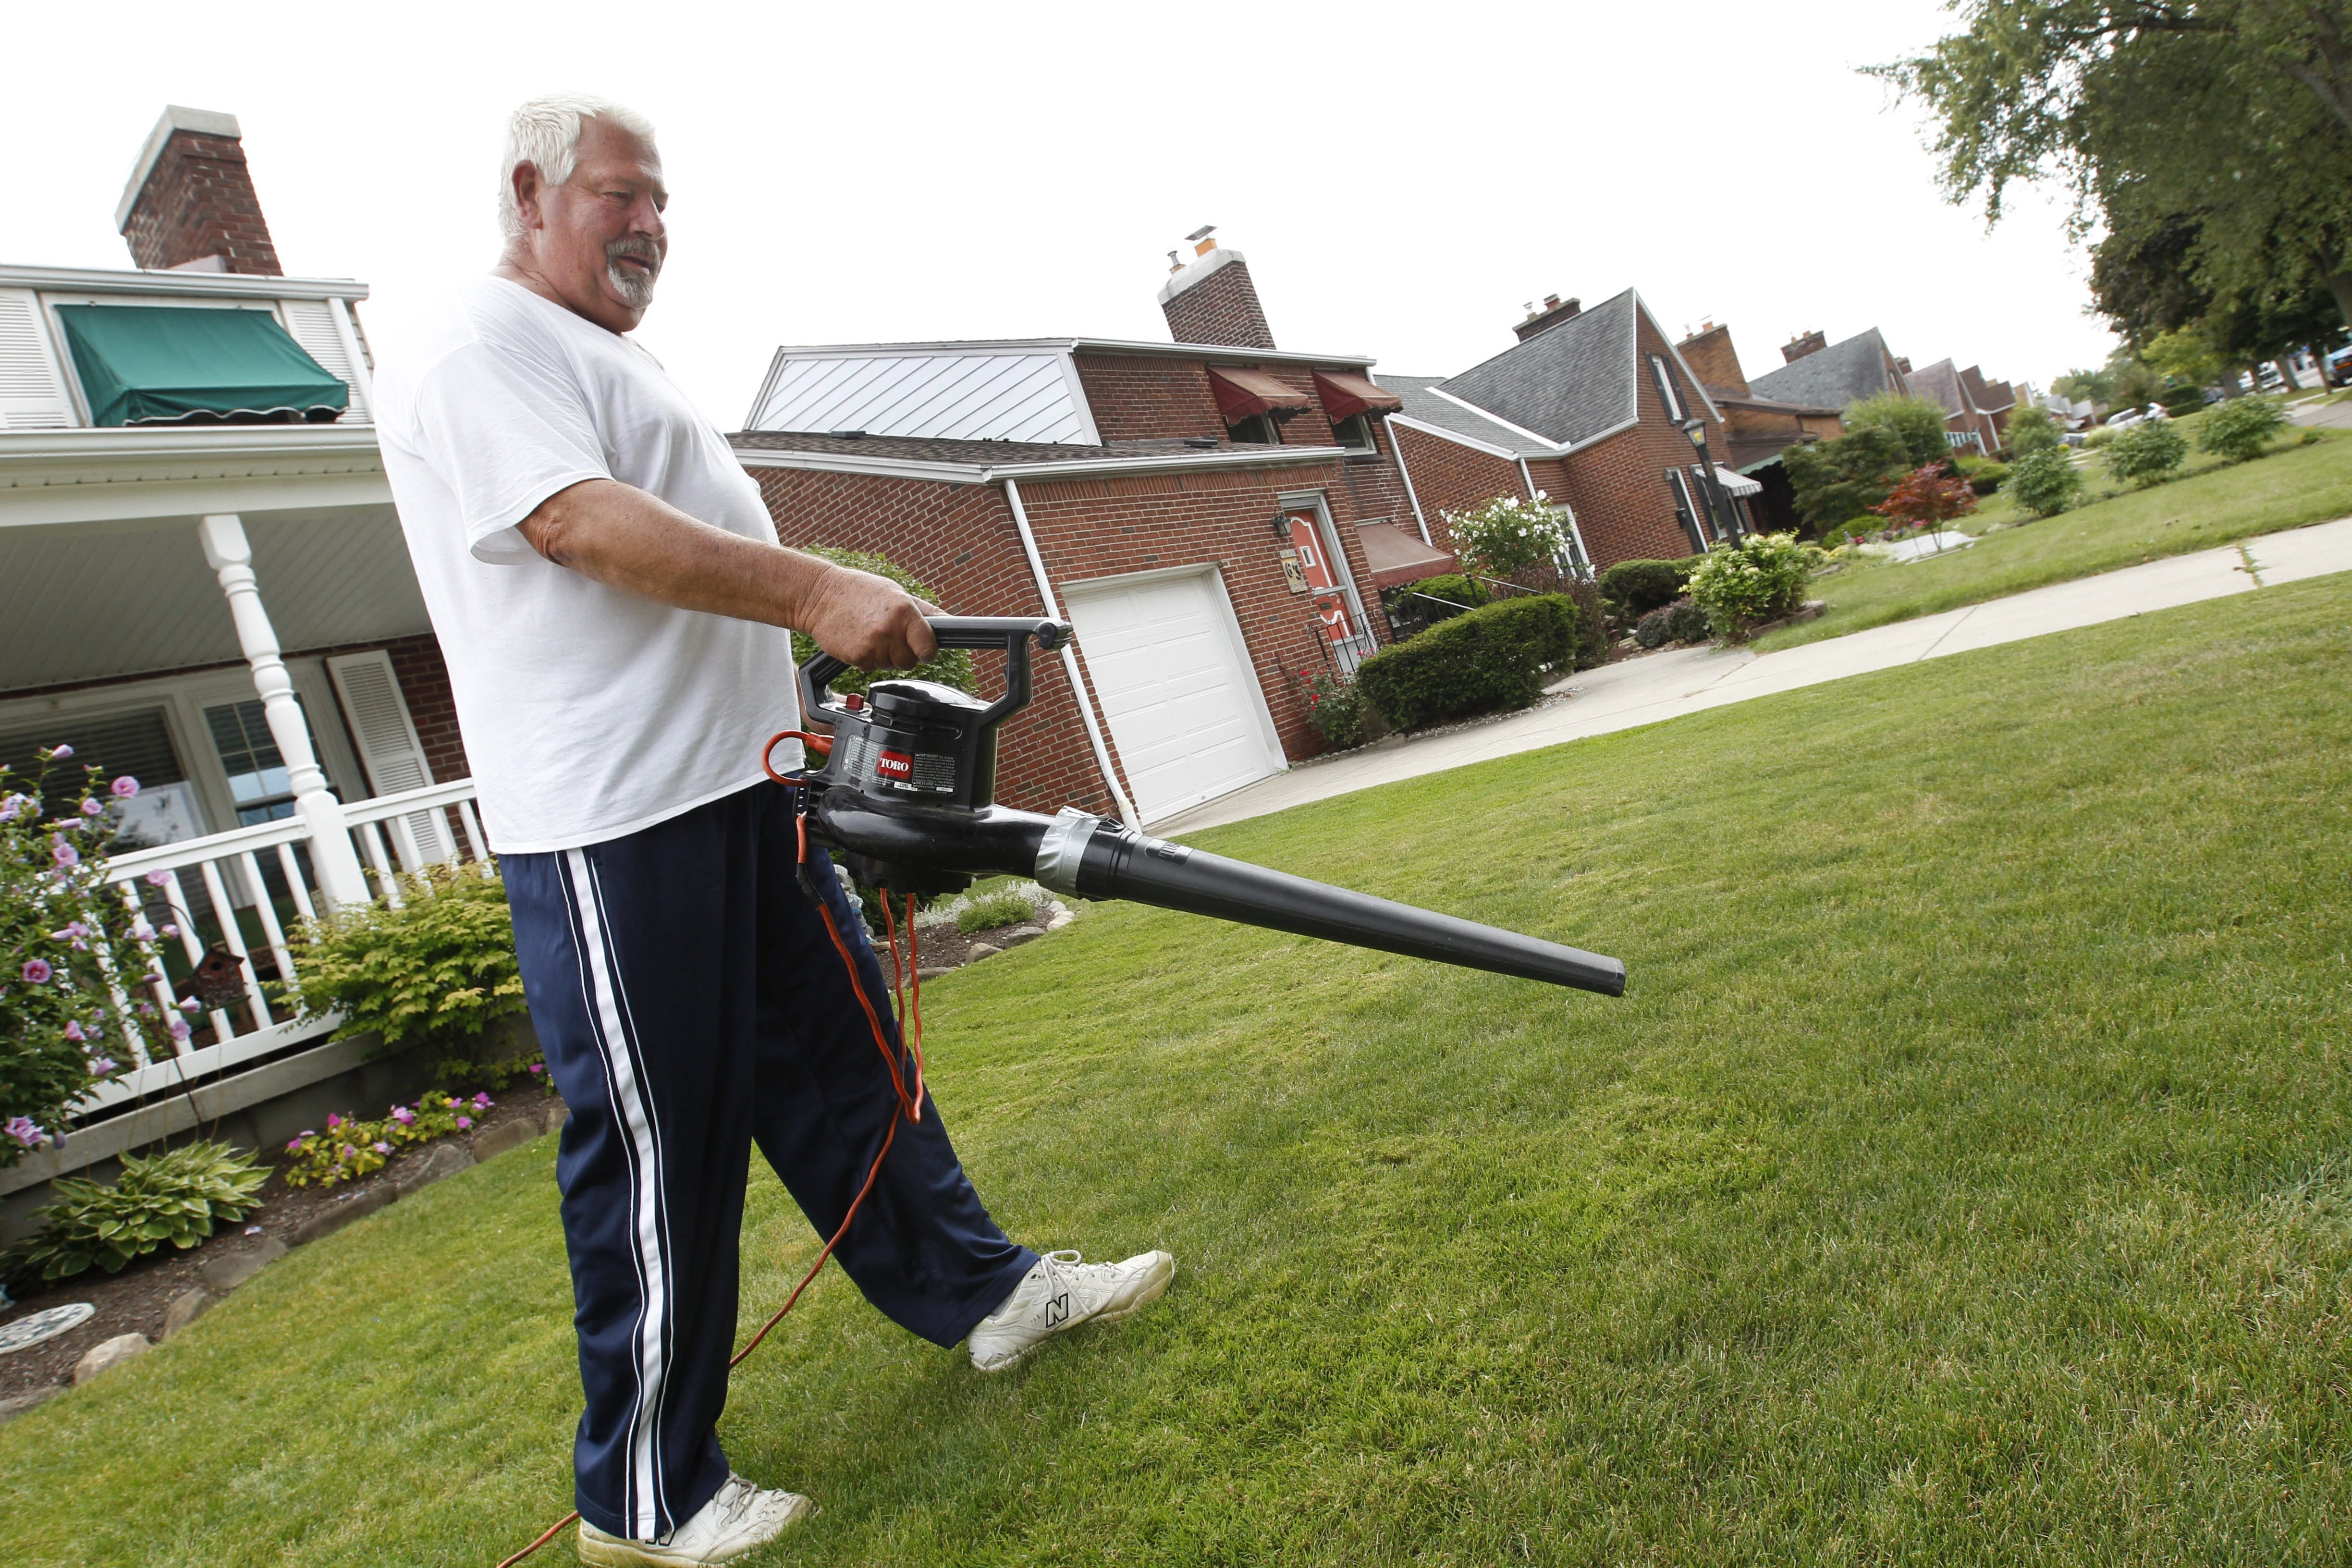 Clark Miller, of Kenmore, uses a leaf blower after cutting his grass. Miller prefers the noisy blower because it's easier than raking.